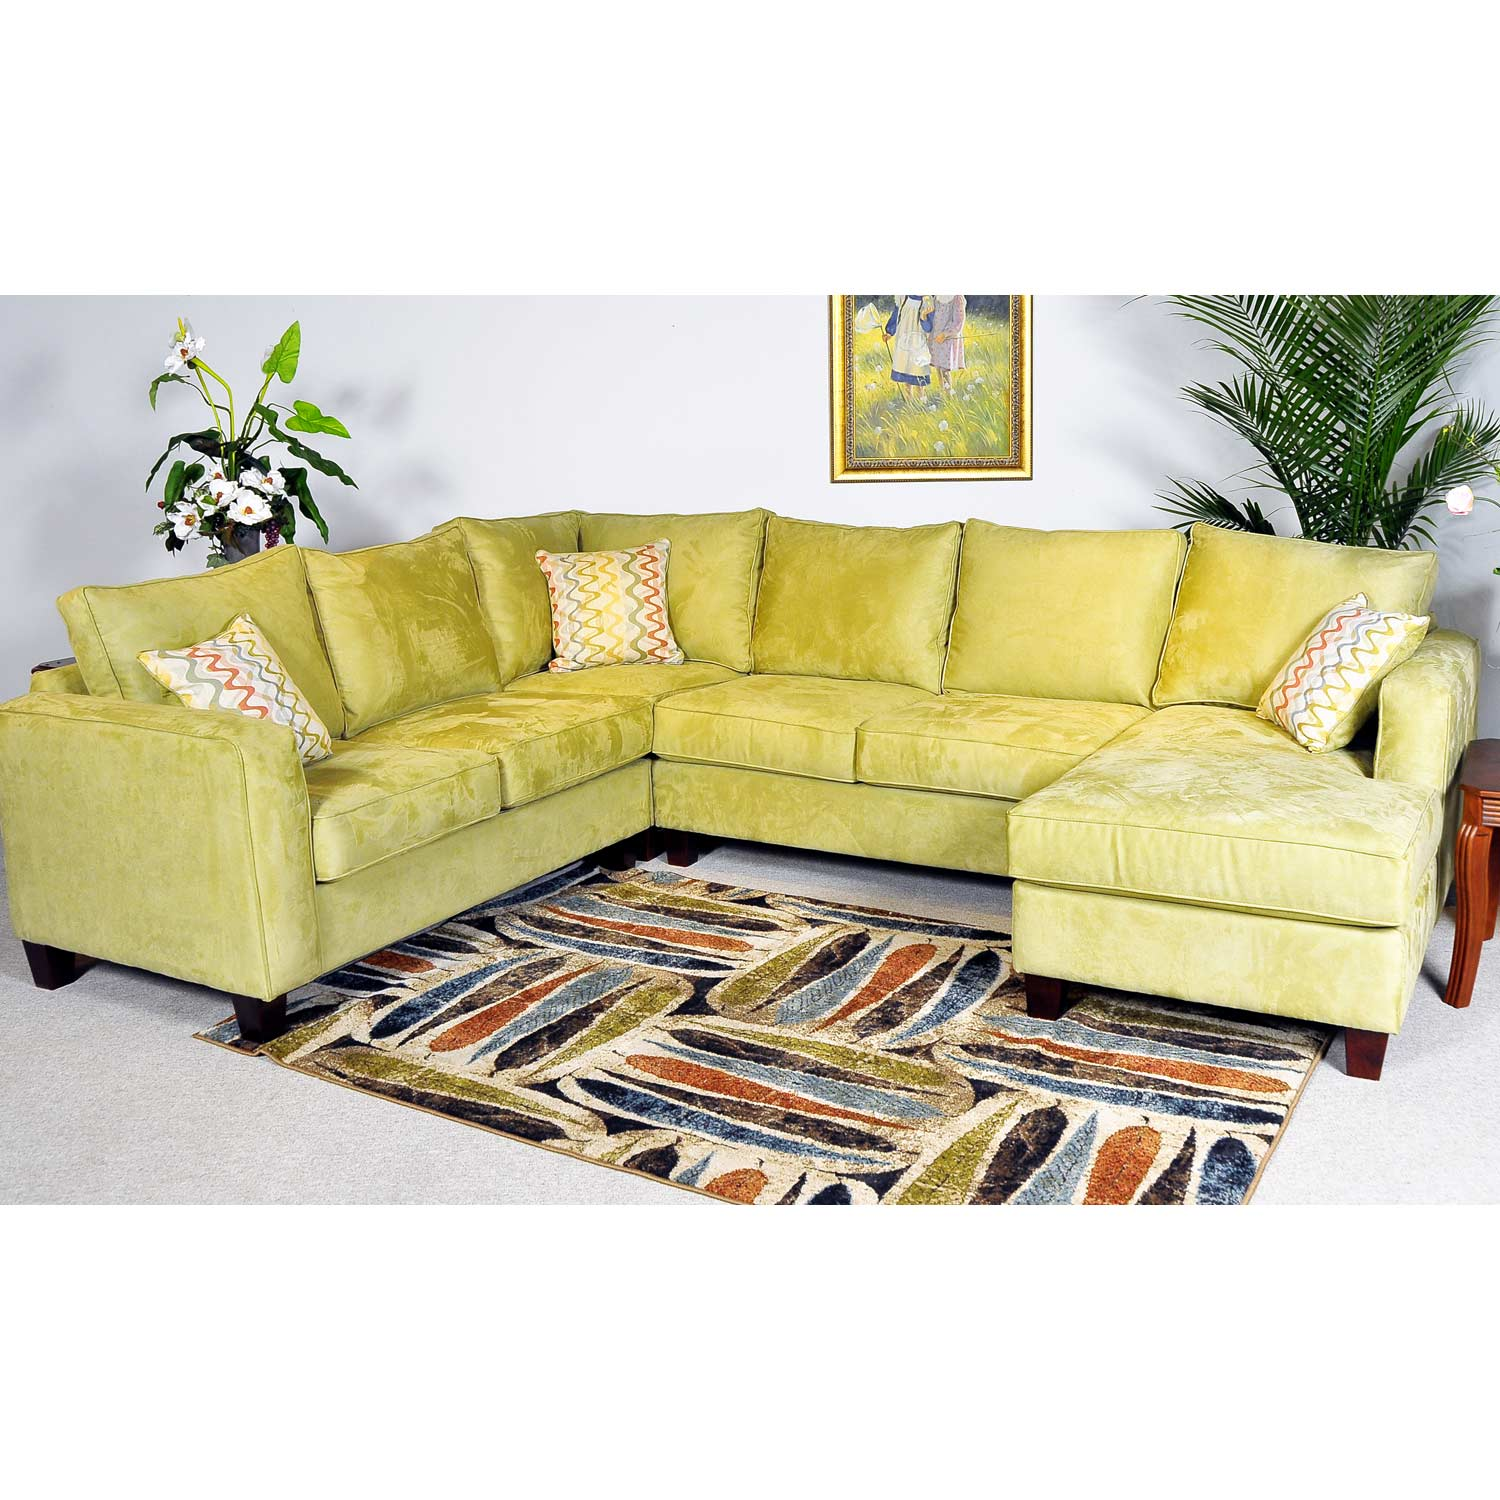 Angie Fabric Sectional Sofa & Chaise - Mission Apple